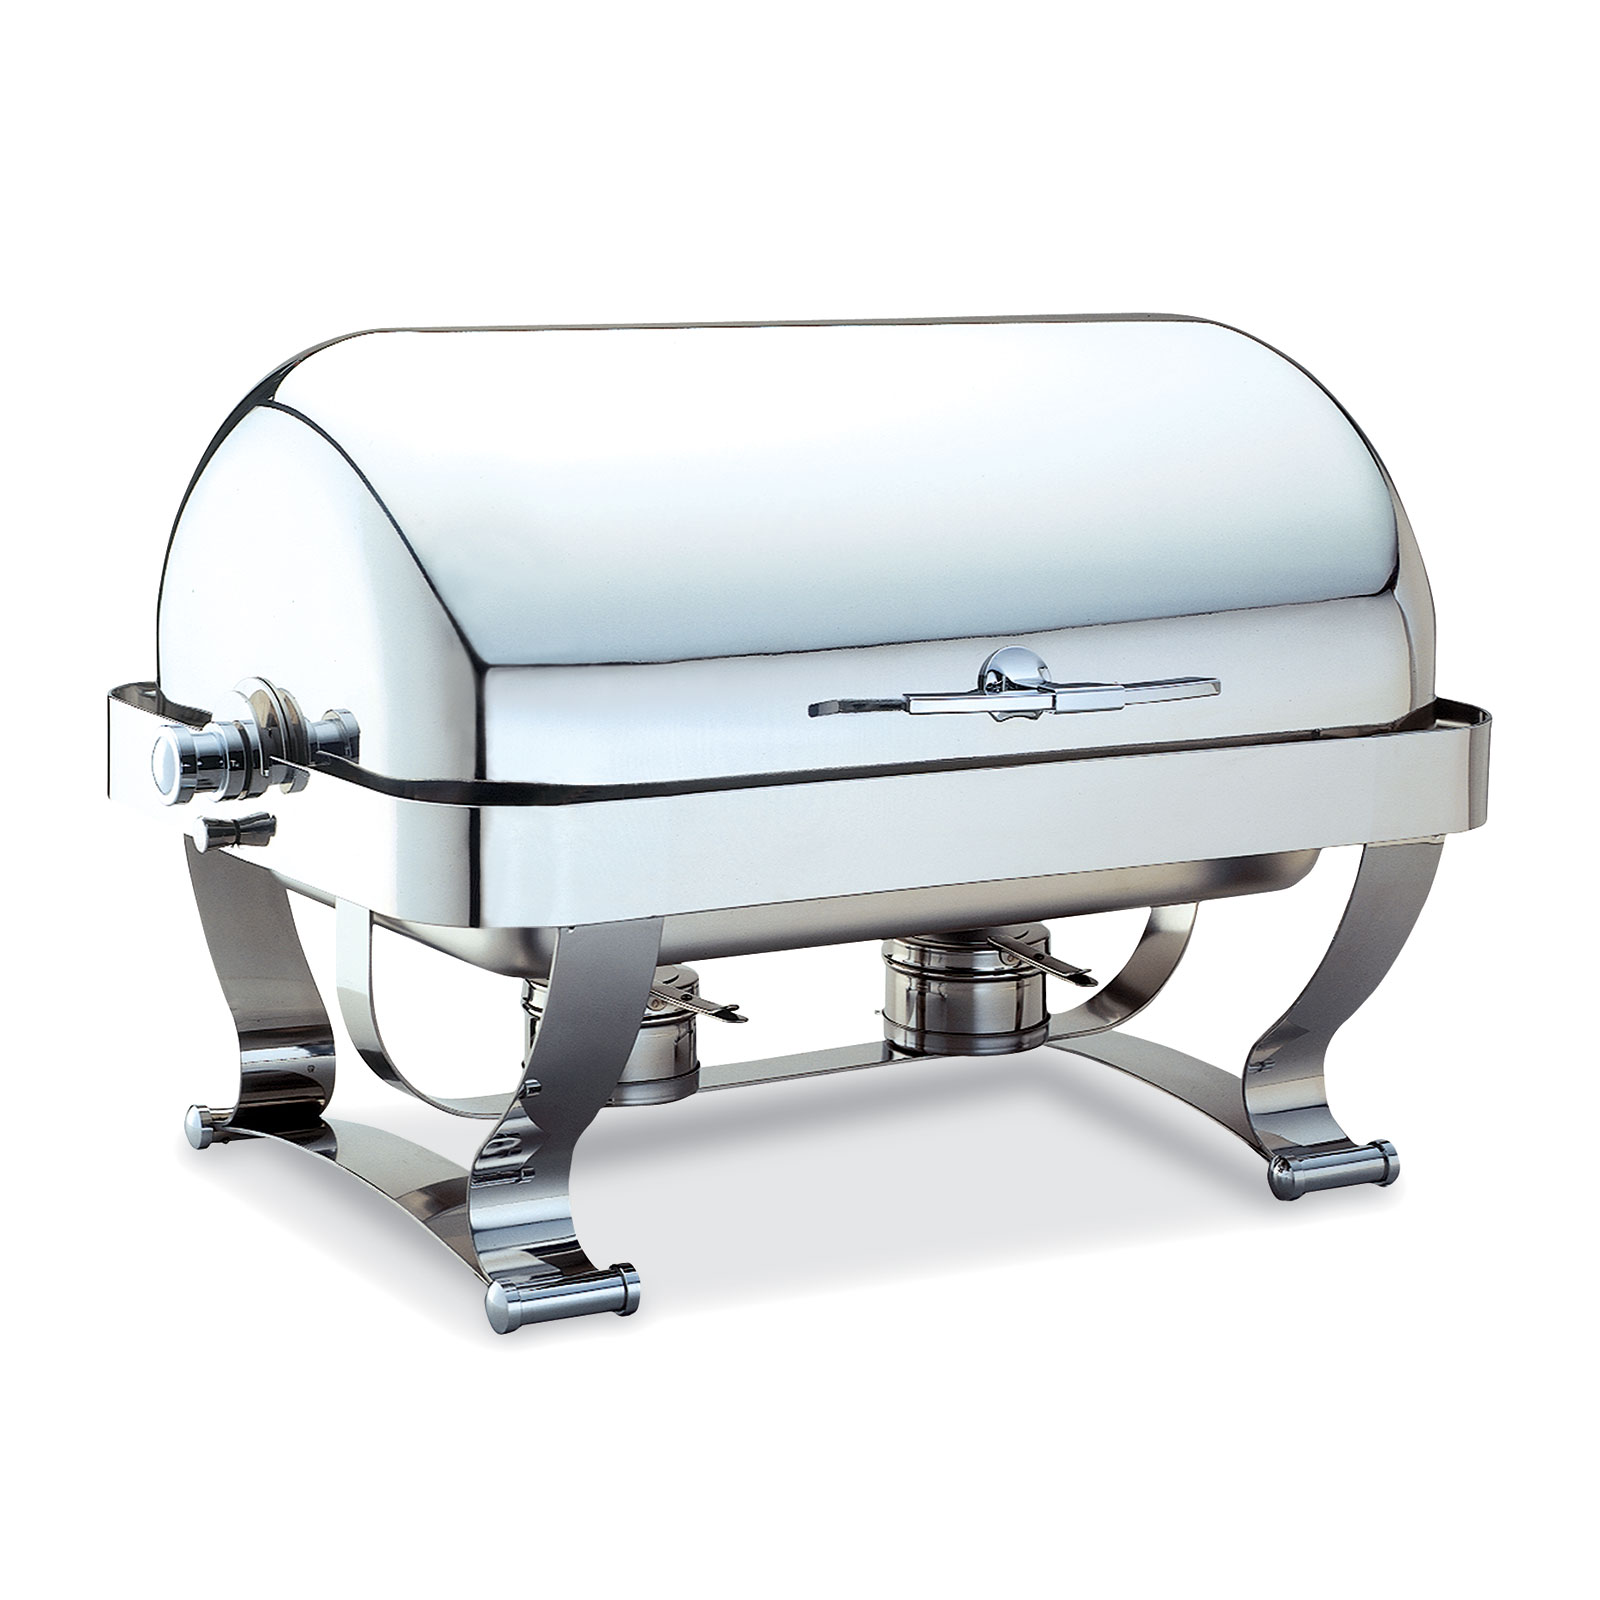 Walco Stainless 54120CR chafing dish